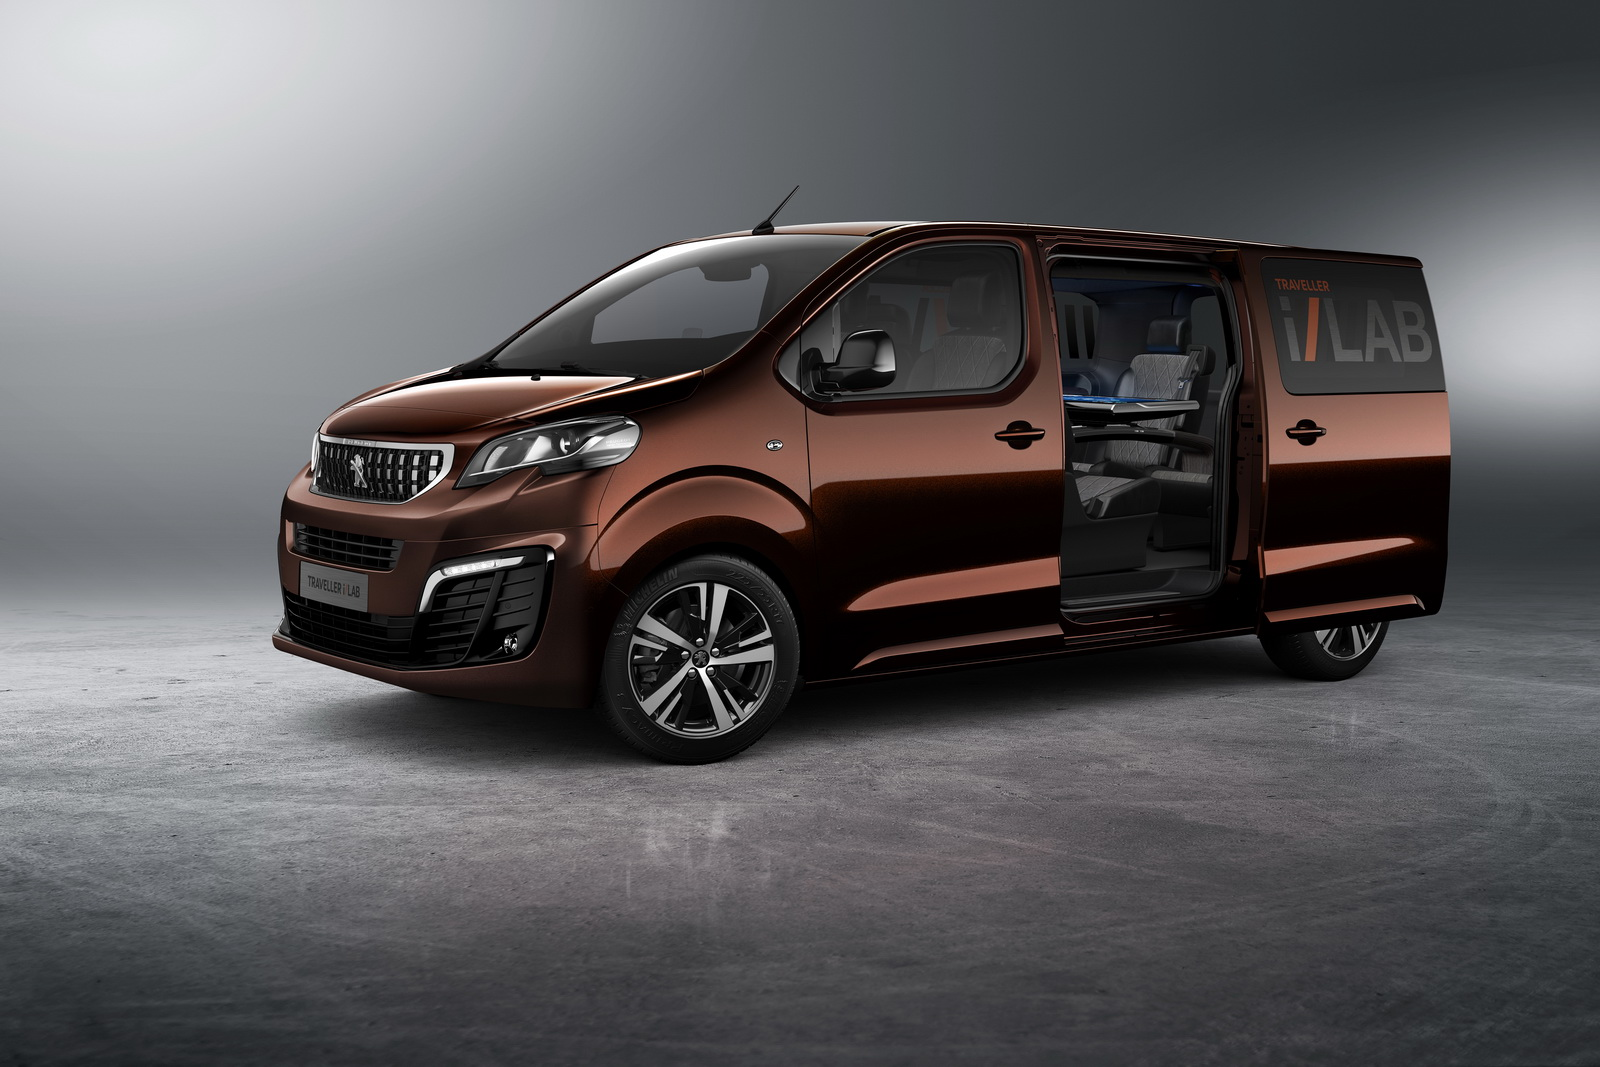 peugeot reveals traveller i lab concept a vip shuttle for tech enthusiasts carscoops. Black Bedroom Furniture Sets. Home Design Ideas